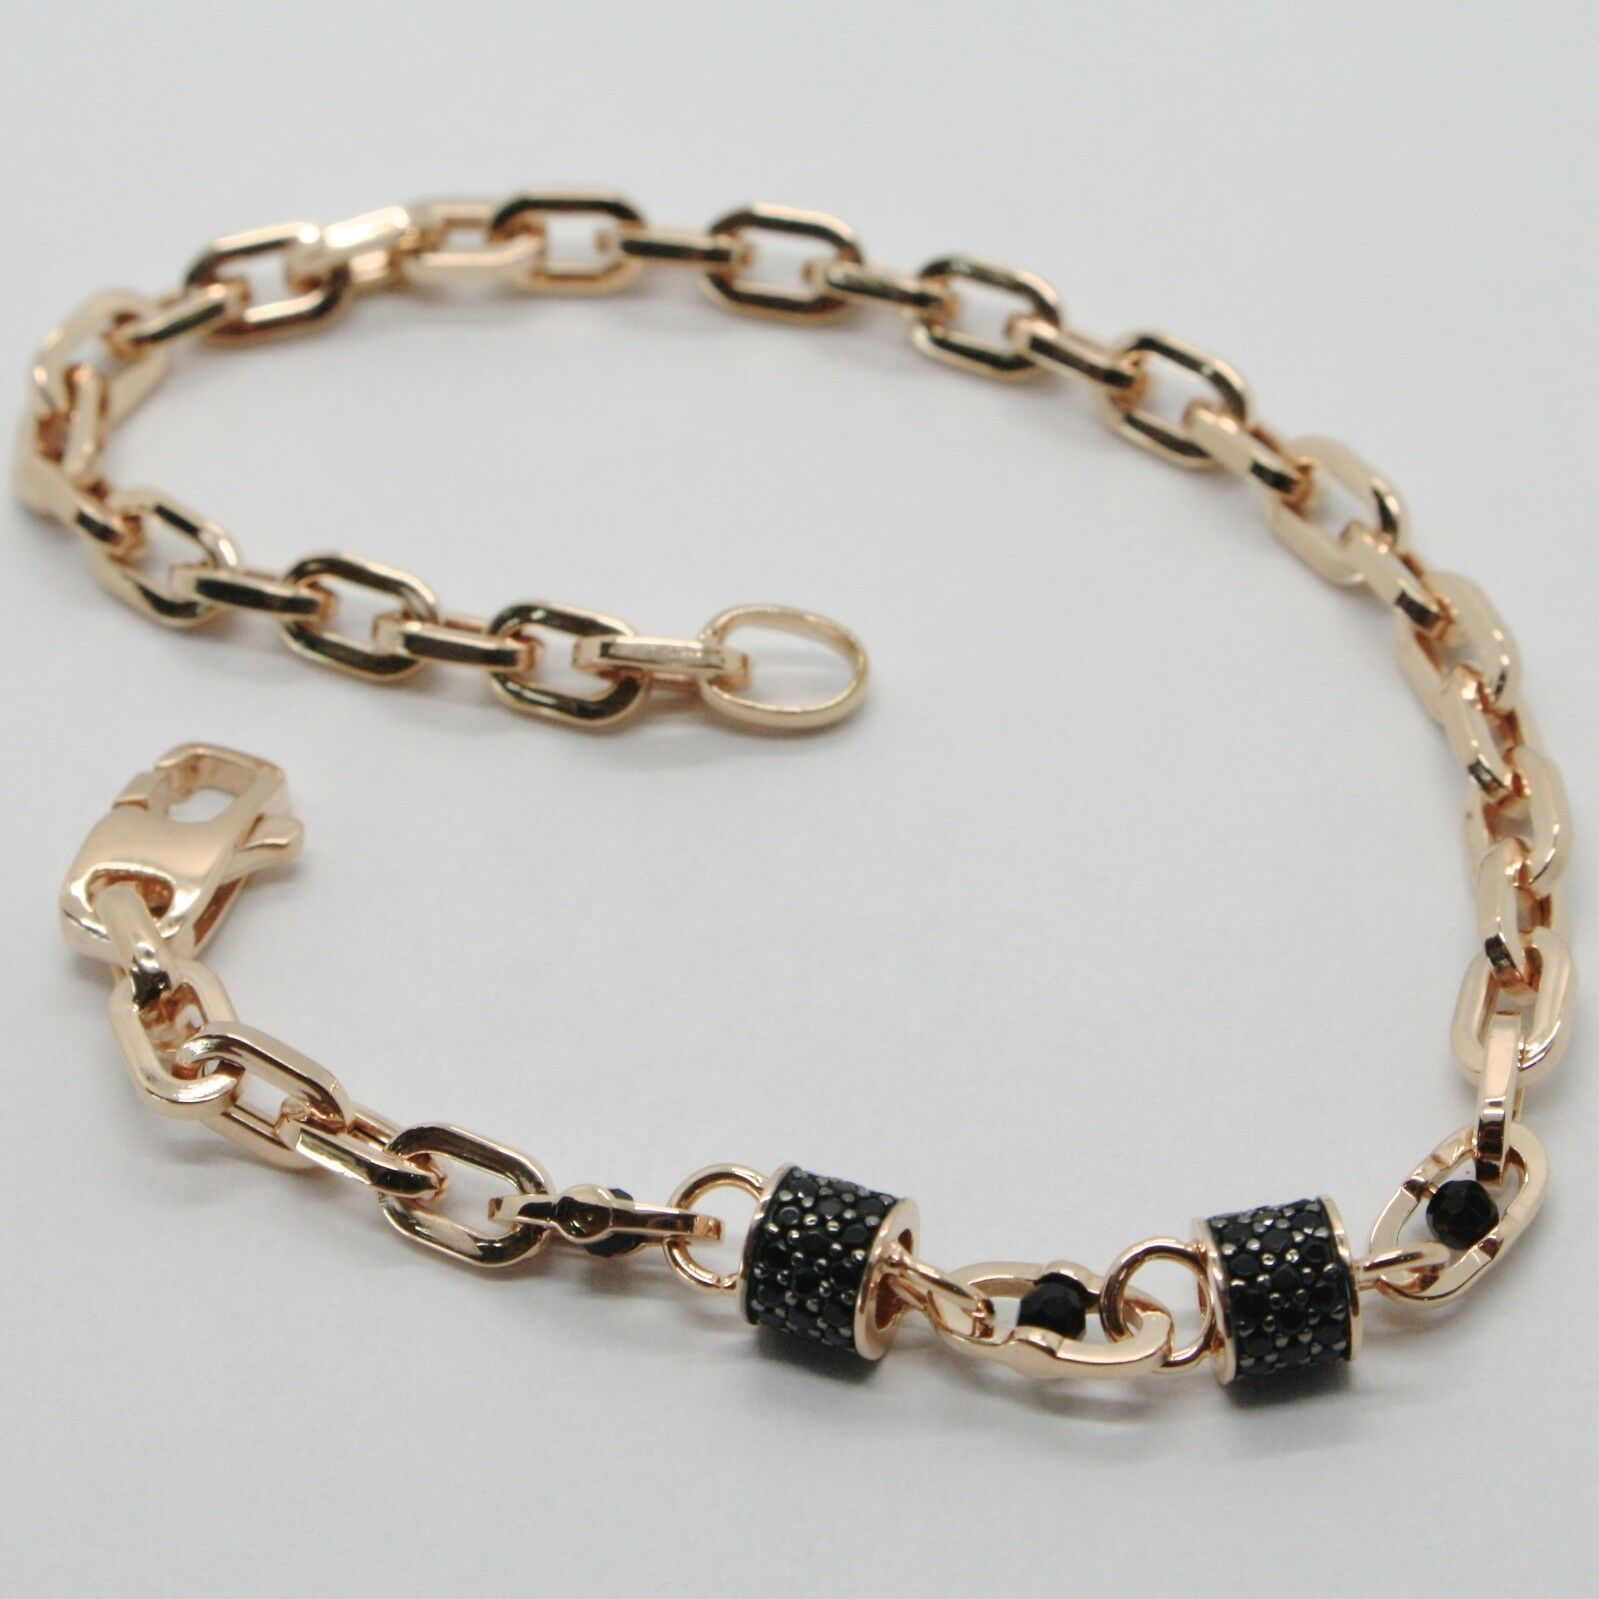 SOLID 18K ROSE GOLD BRACELET SQUARE TUBE OVAL LINK, BLACK ZIRCONIA, ITALY MADE